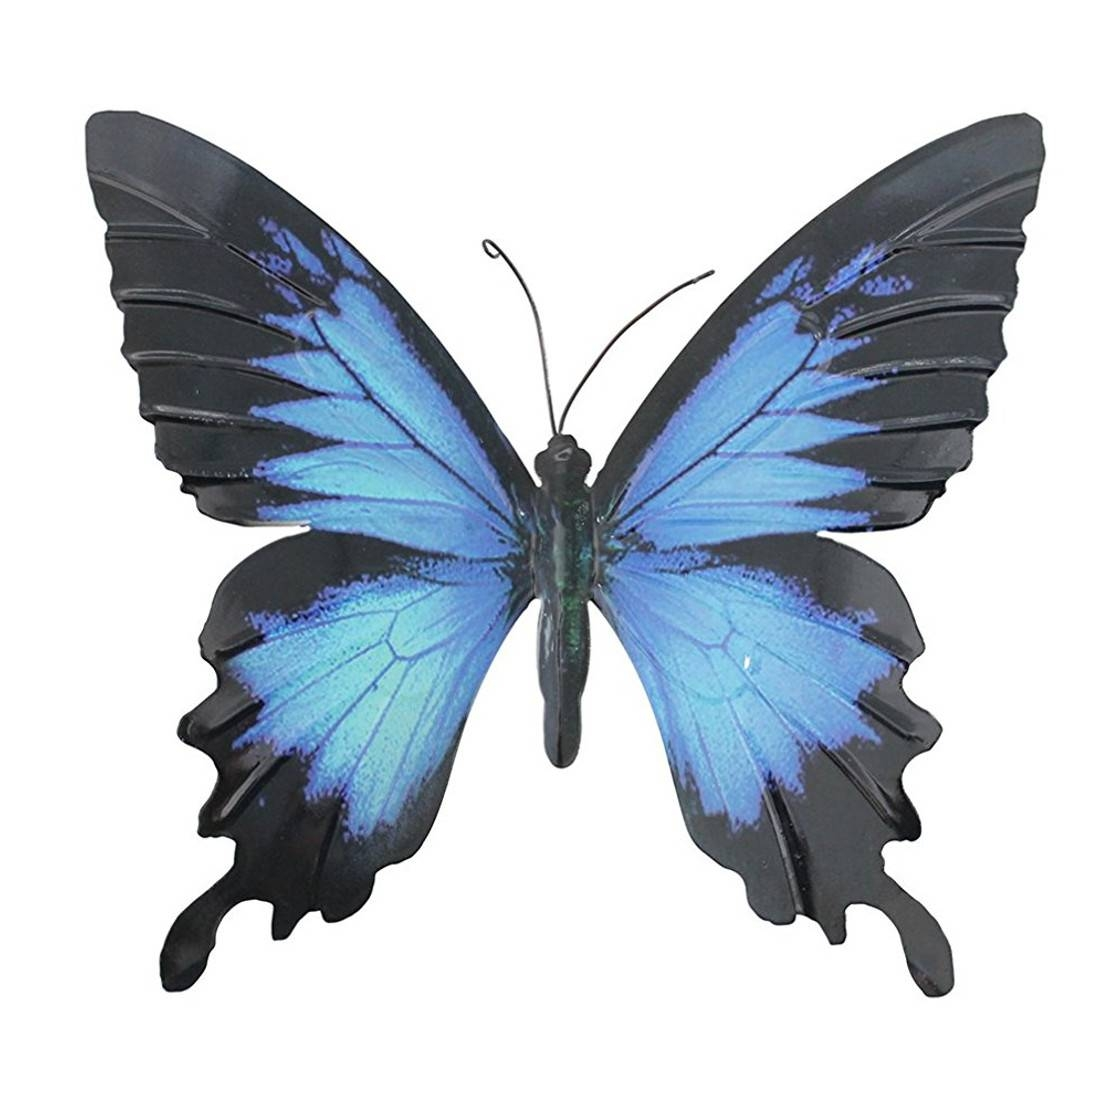 Large Metal Butterfly Blue And Black Outdoor Garden Home Intended For Most Recently Released Large Metal Butterfly Wall Art (View 11 of 25)